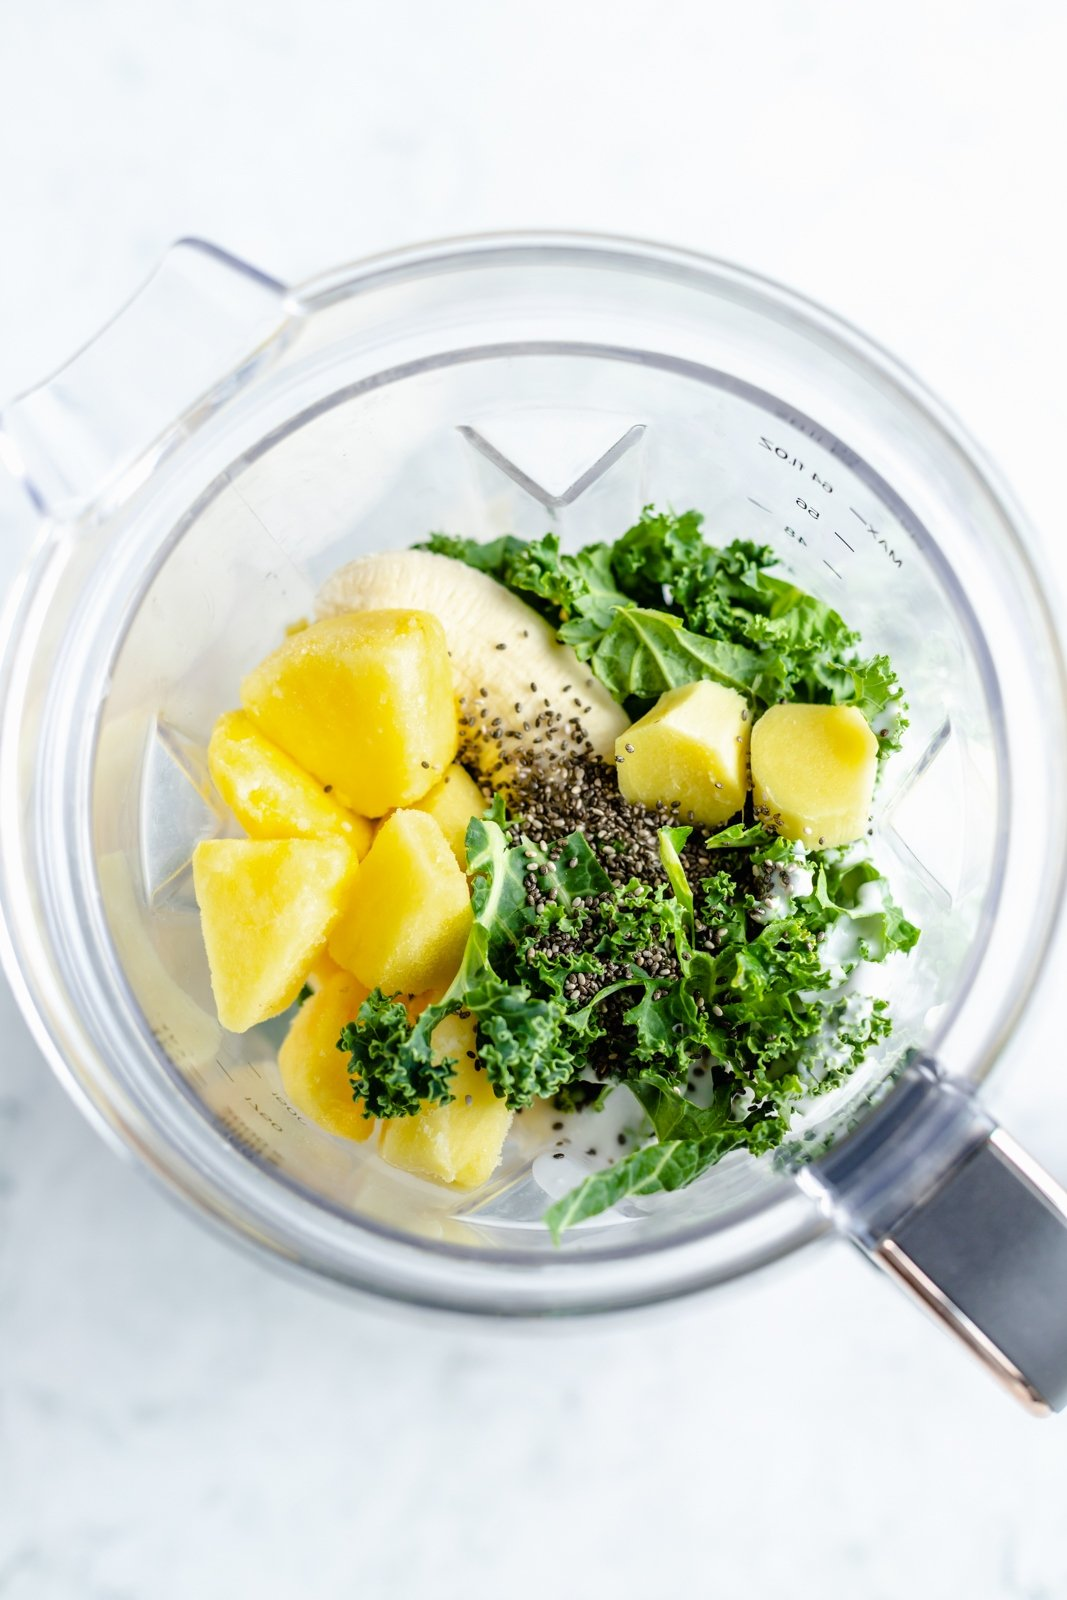 ingredients for a kale smoothie in a blender